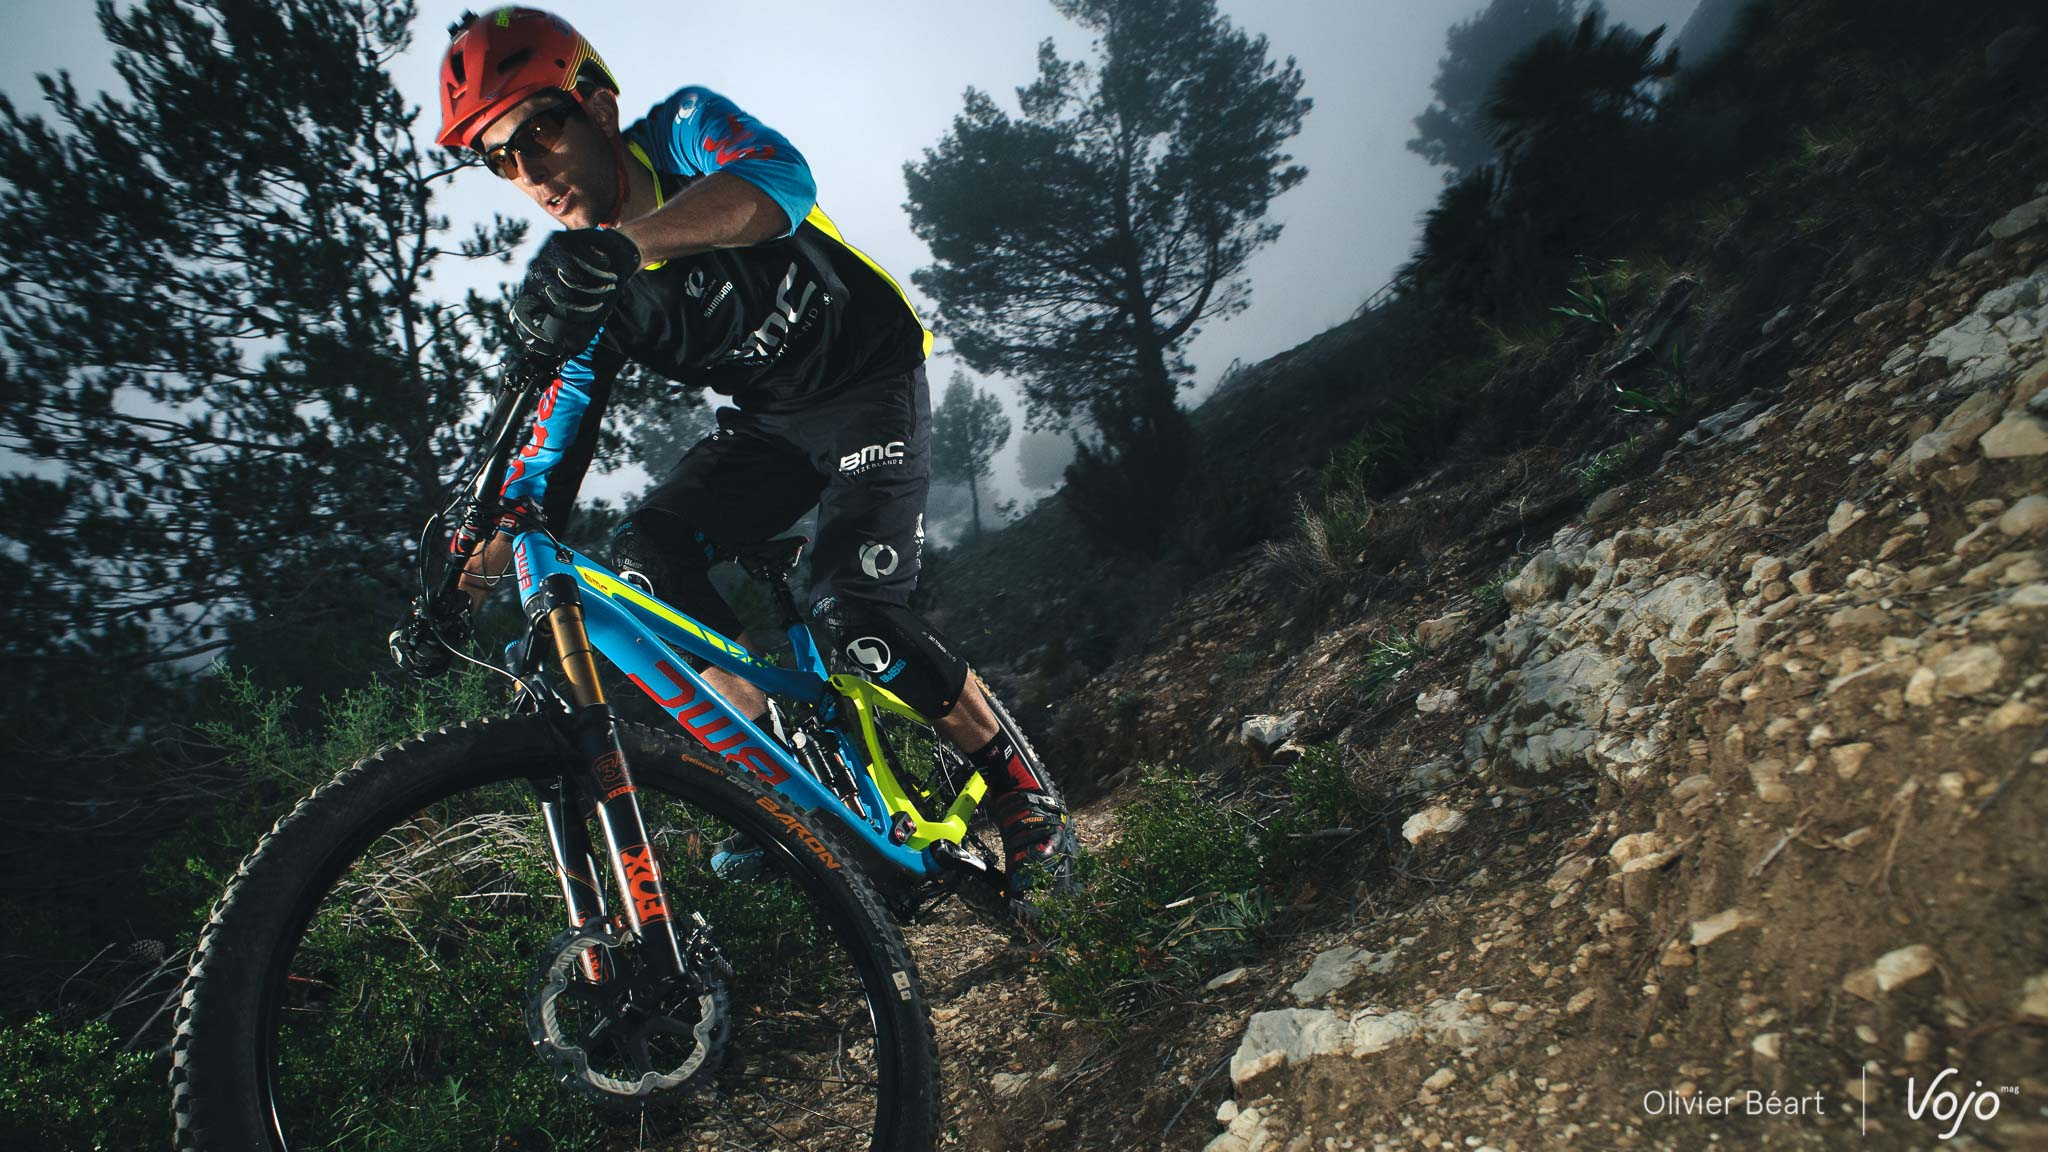 Francois_Bailly_Maitre_Interview_BMC_TrailCrew_Copyright_OBeart_VojoMag-8